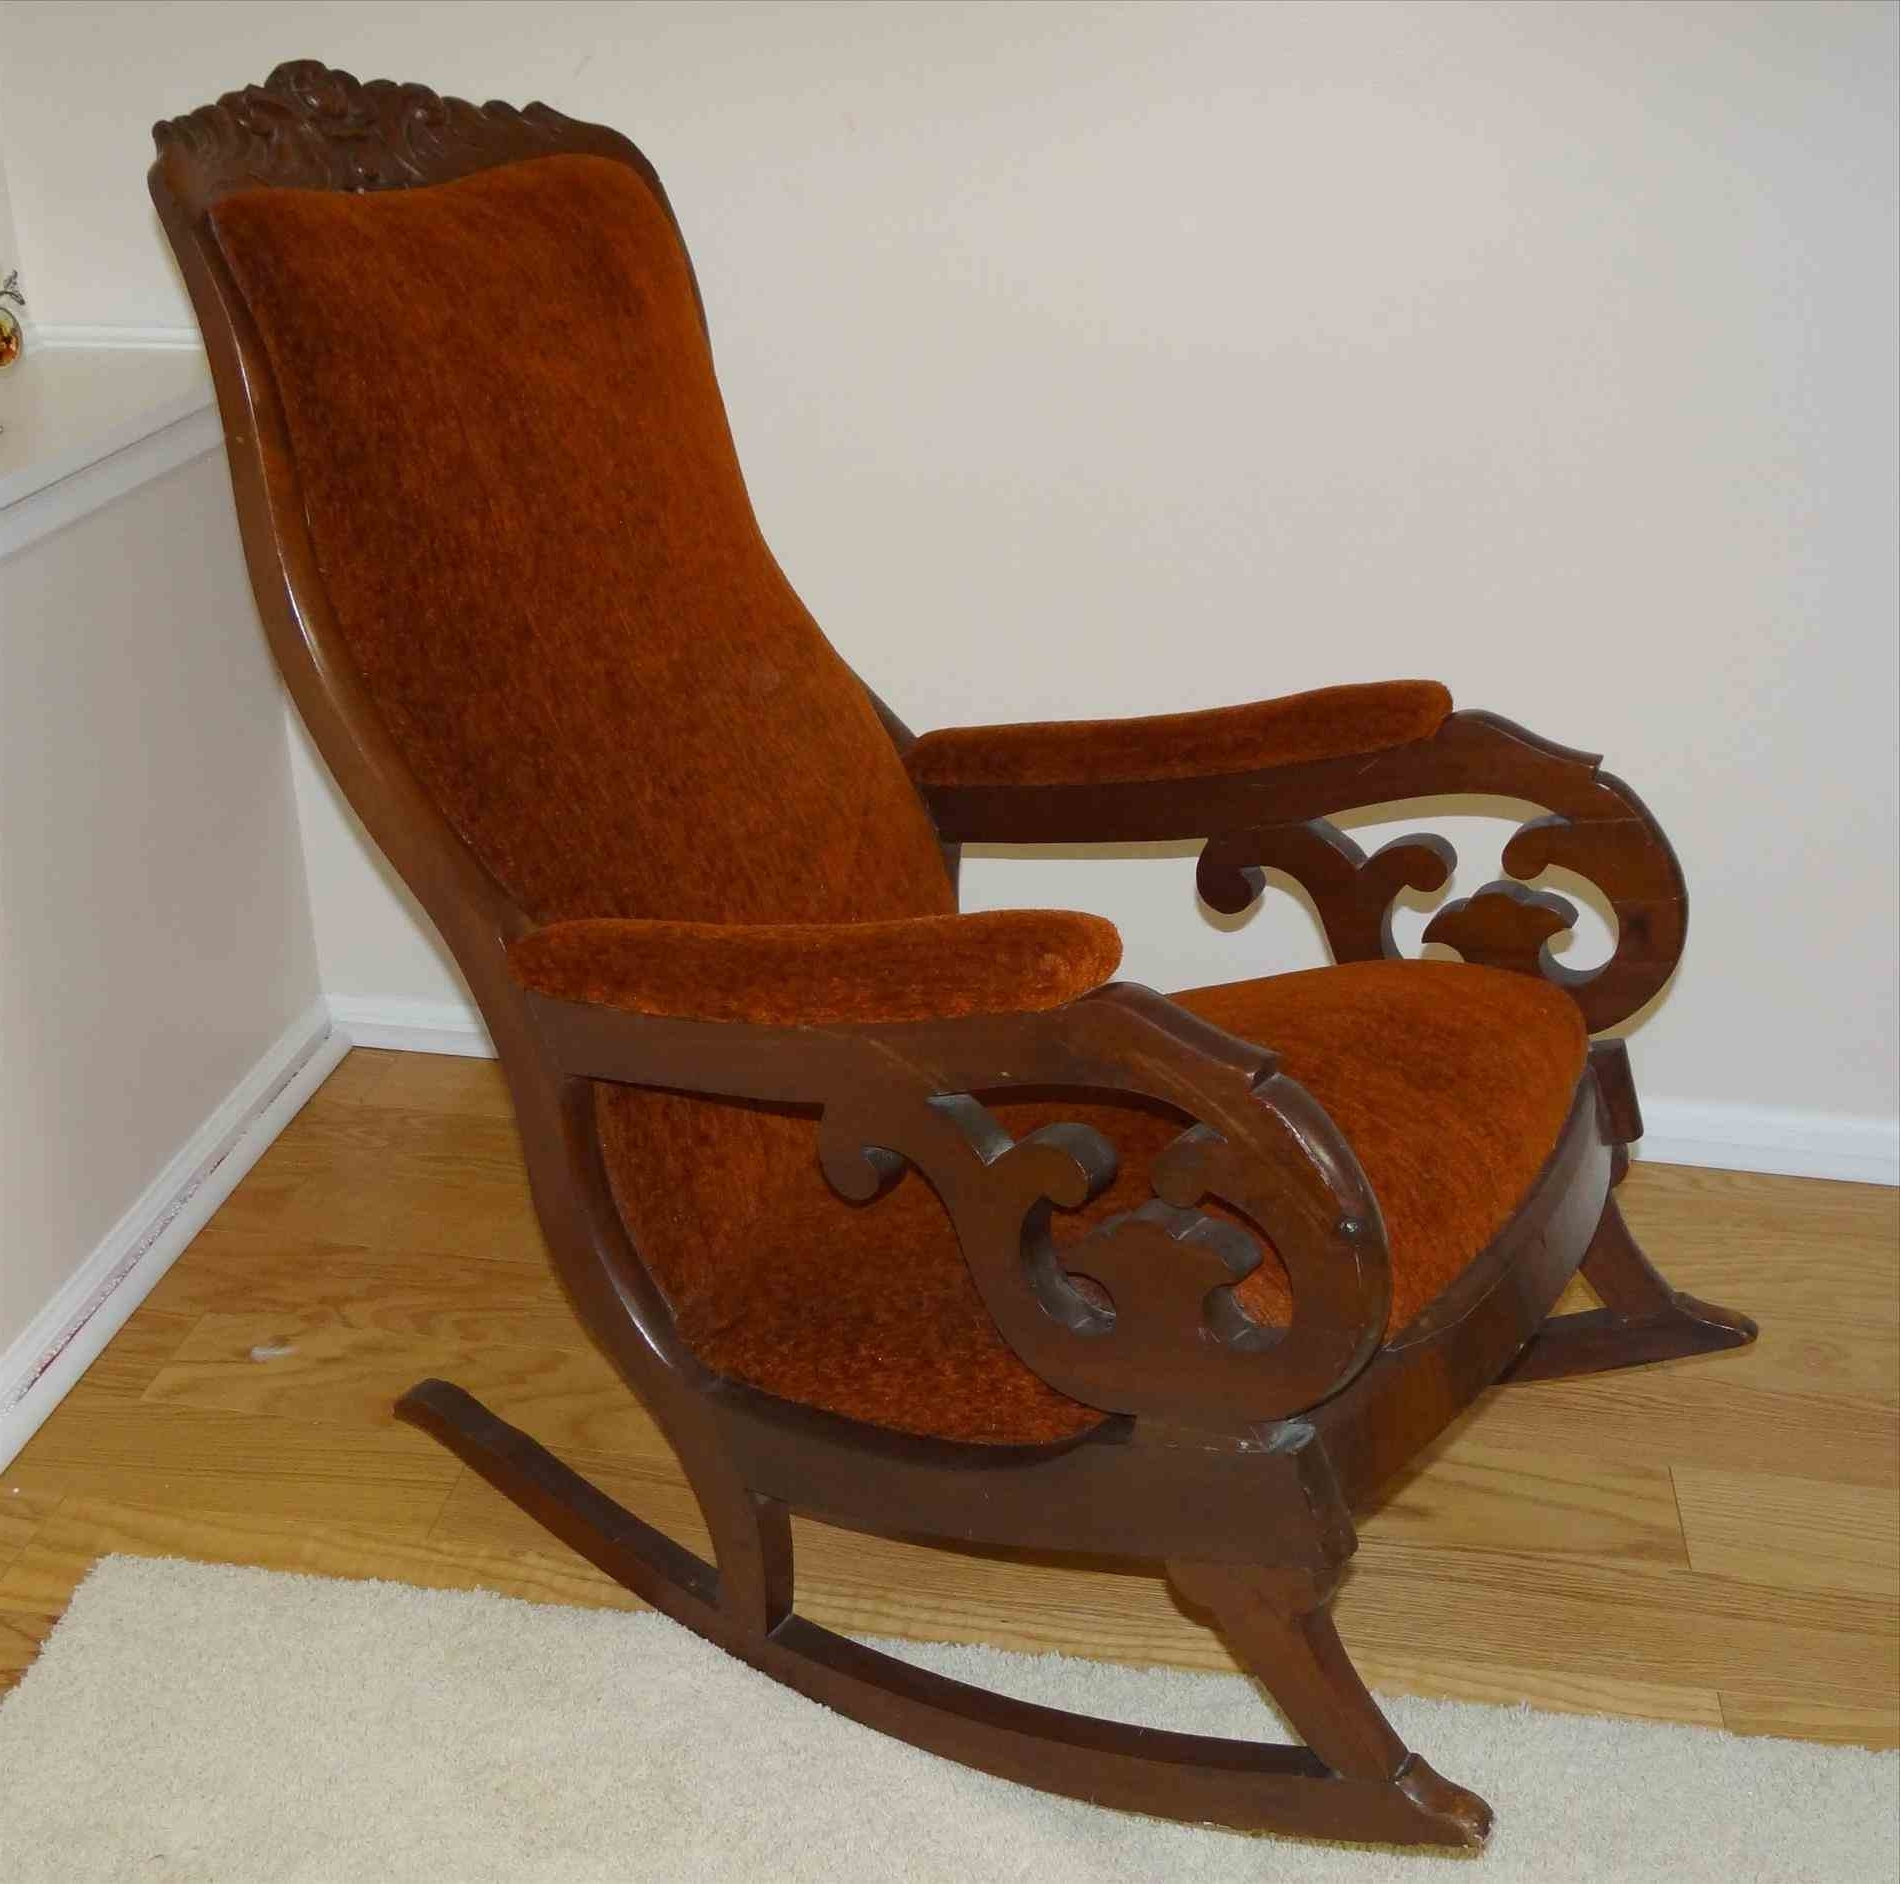 Old Fashioned Rocking Chairs For Most Up To Date Antique Old Fashioned Rocking Chair Mahogany Upholstered Rocking (View 5 of 15)